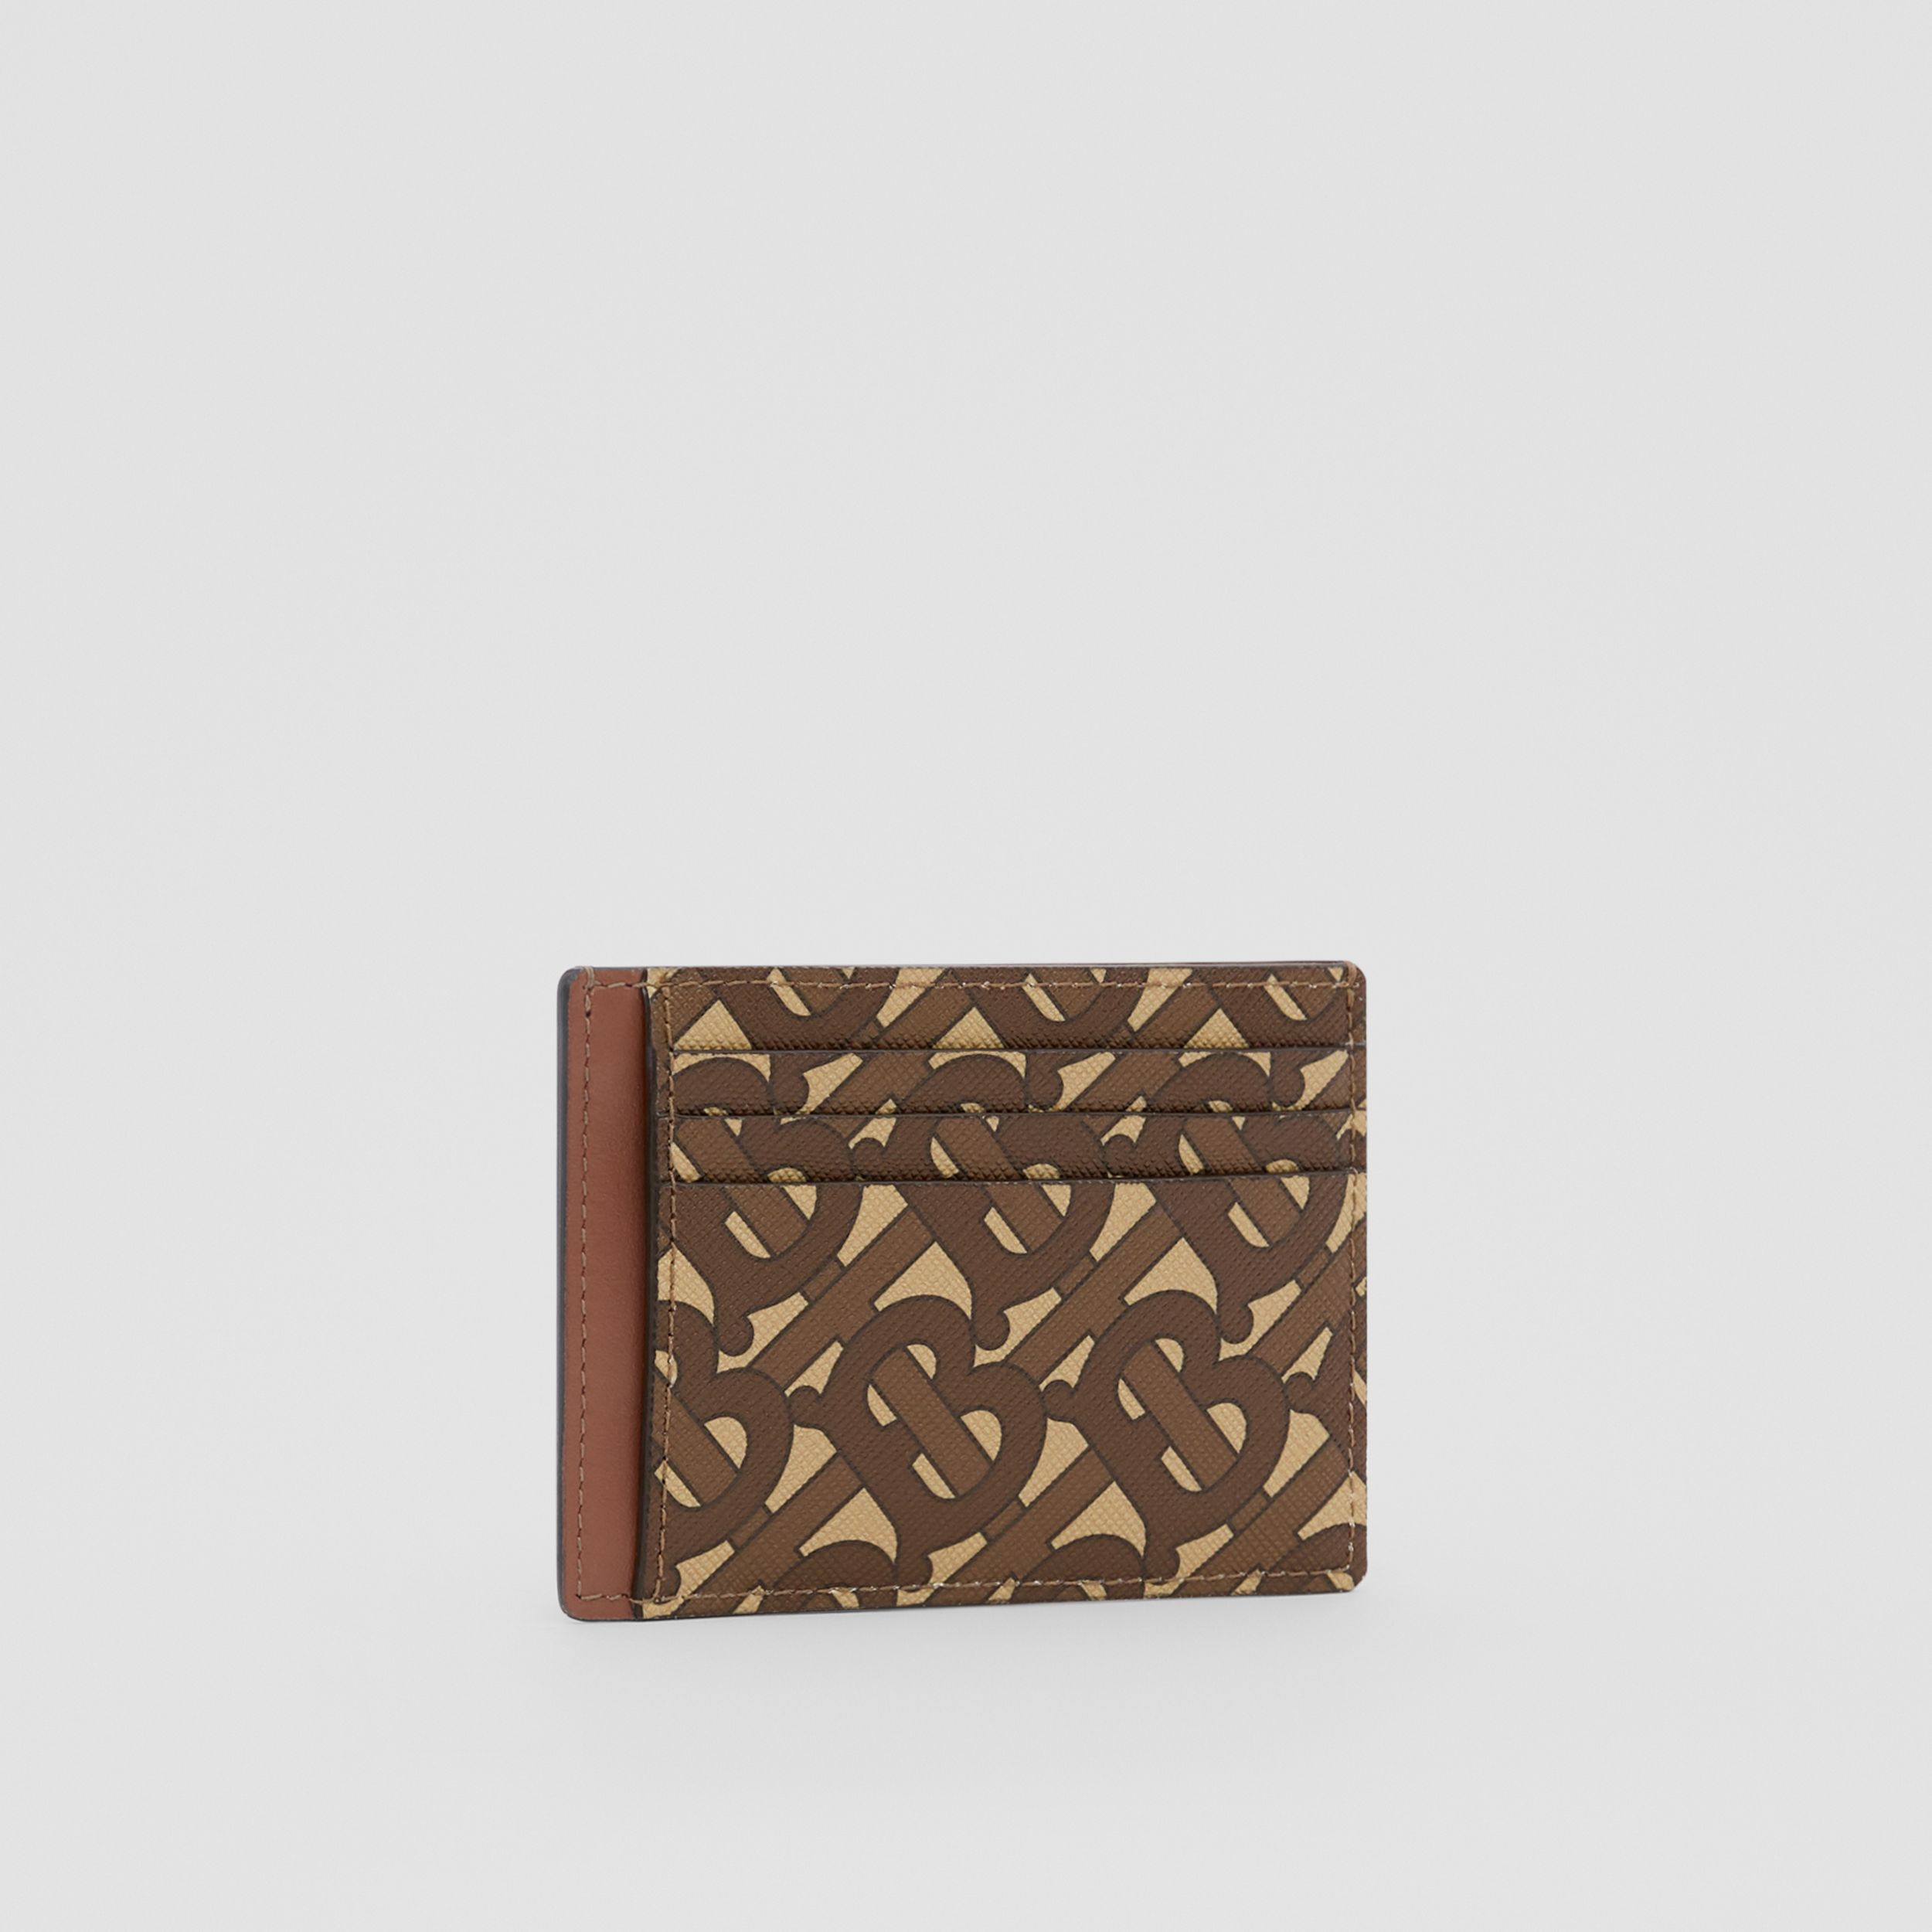 Monogram Print E-canvas Money Clip Card Case in Bridle Brown - Men | Burberry - 4